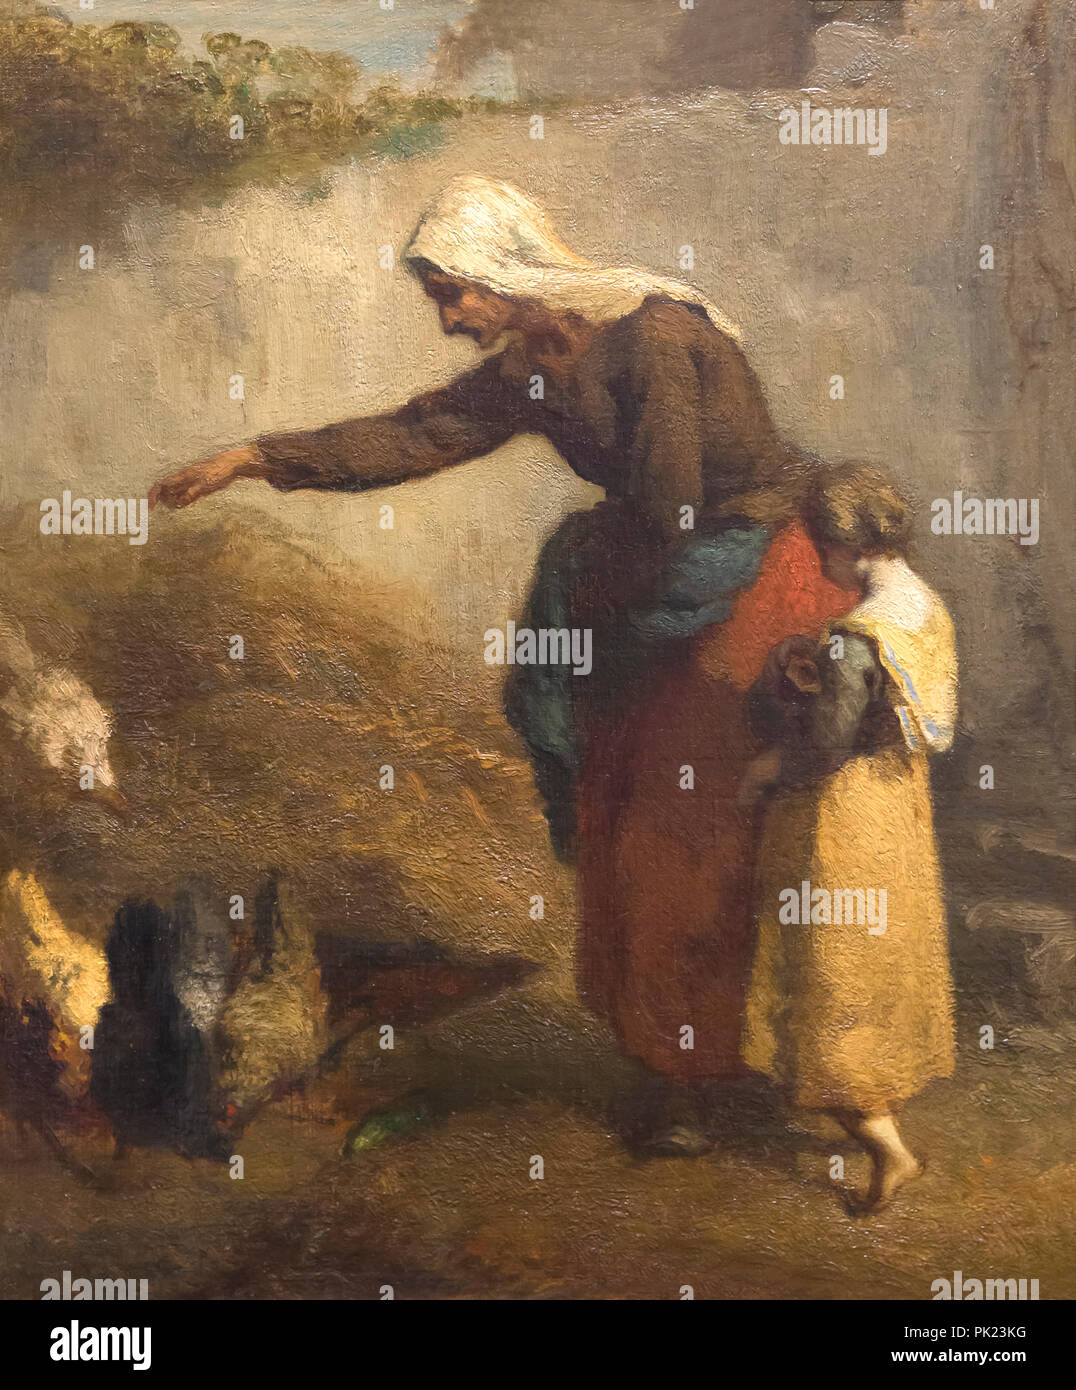 Woman Feeding Chickens, Jean-Francois Millet, 1846-1848, Art Institute of Chicago, Chicago, Illinois, USA, North America, - Stock Image